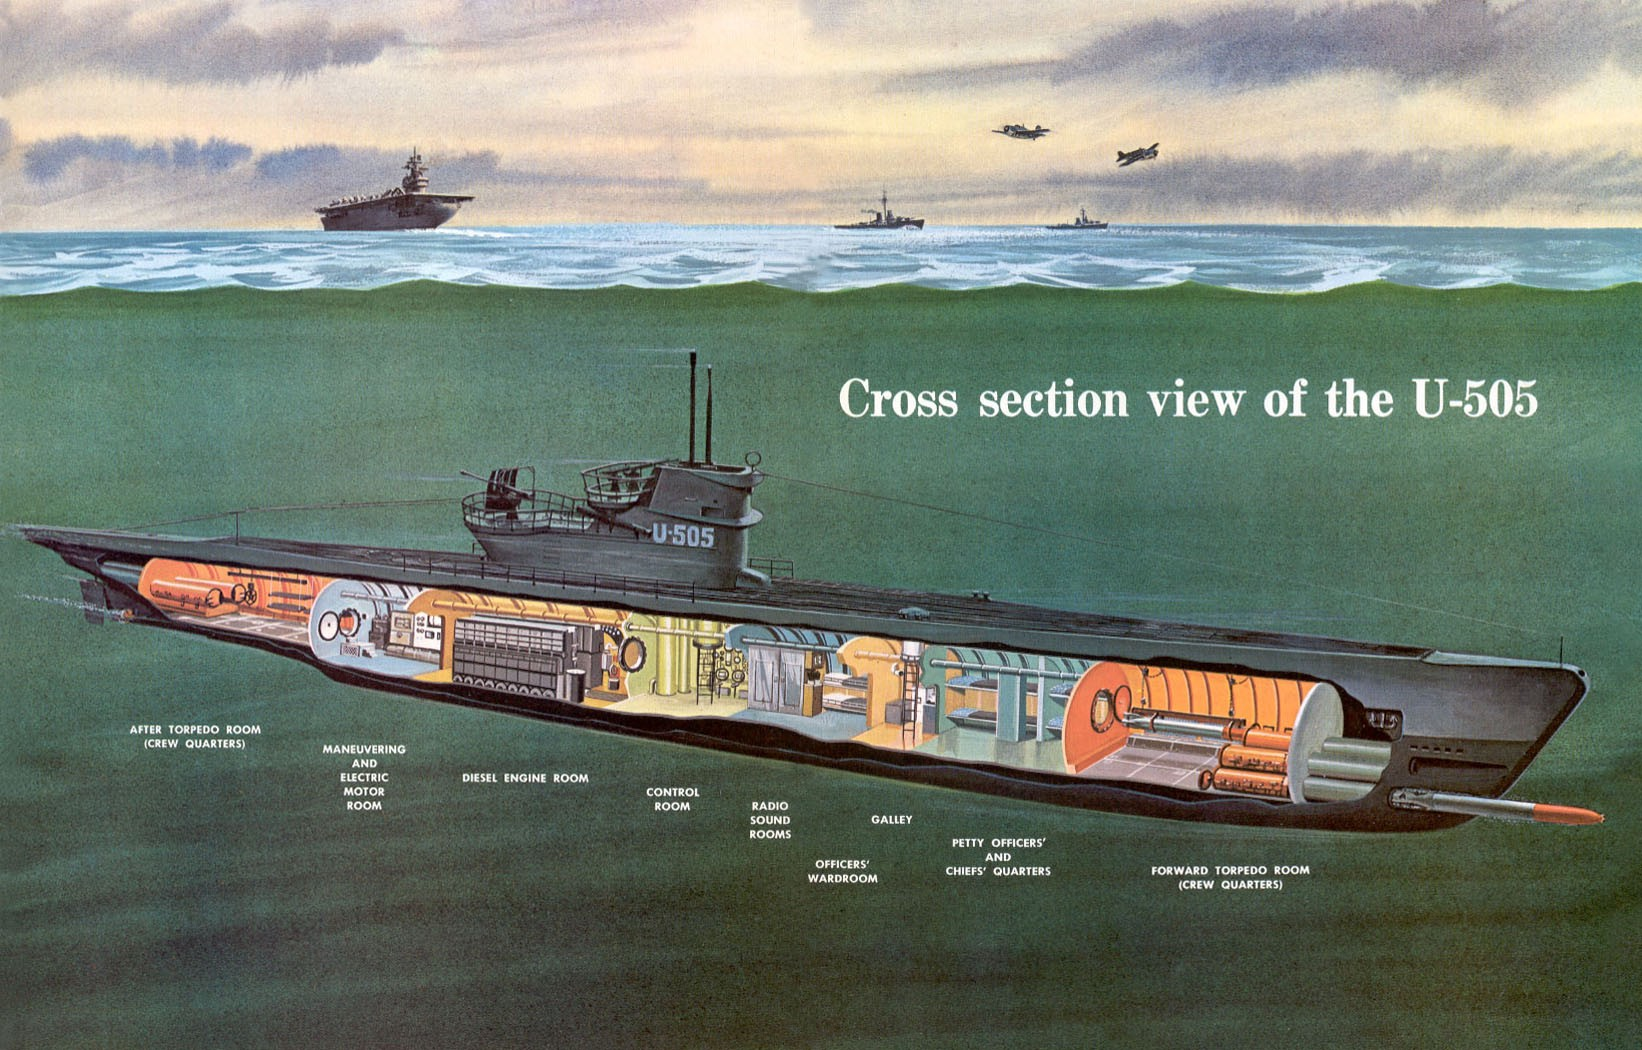 hight resolution of cross section view of u 505 us navy